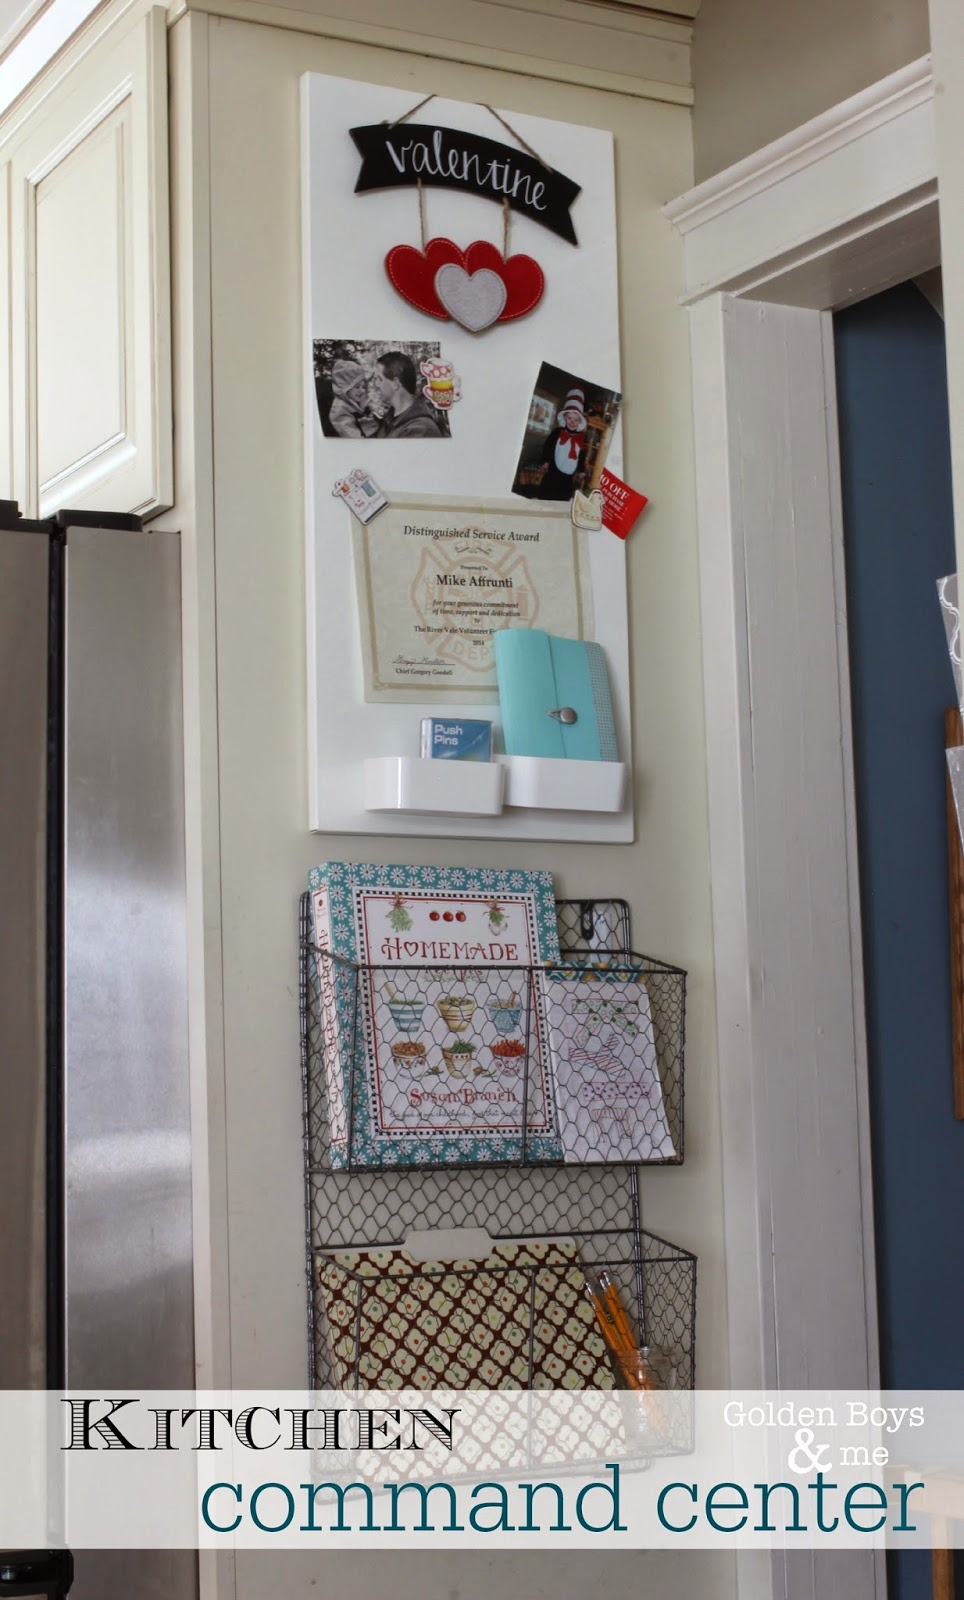 Kitchen Command Center with wire basket and Ikea magnetic message board-www.goldenboysnadme.com